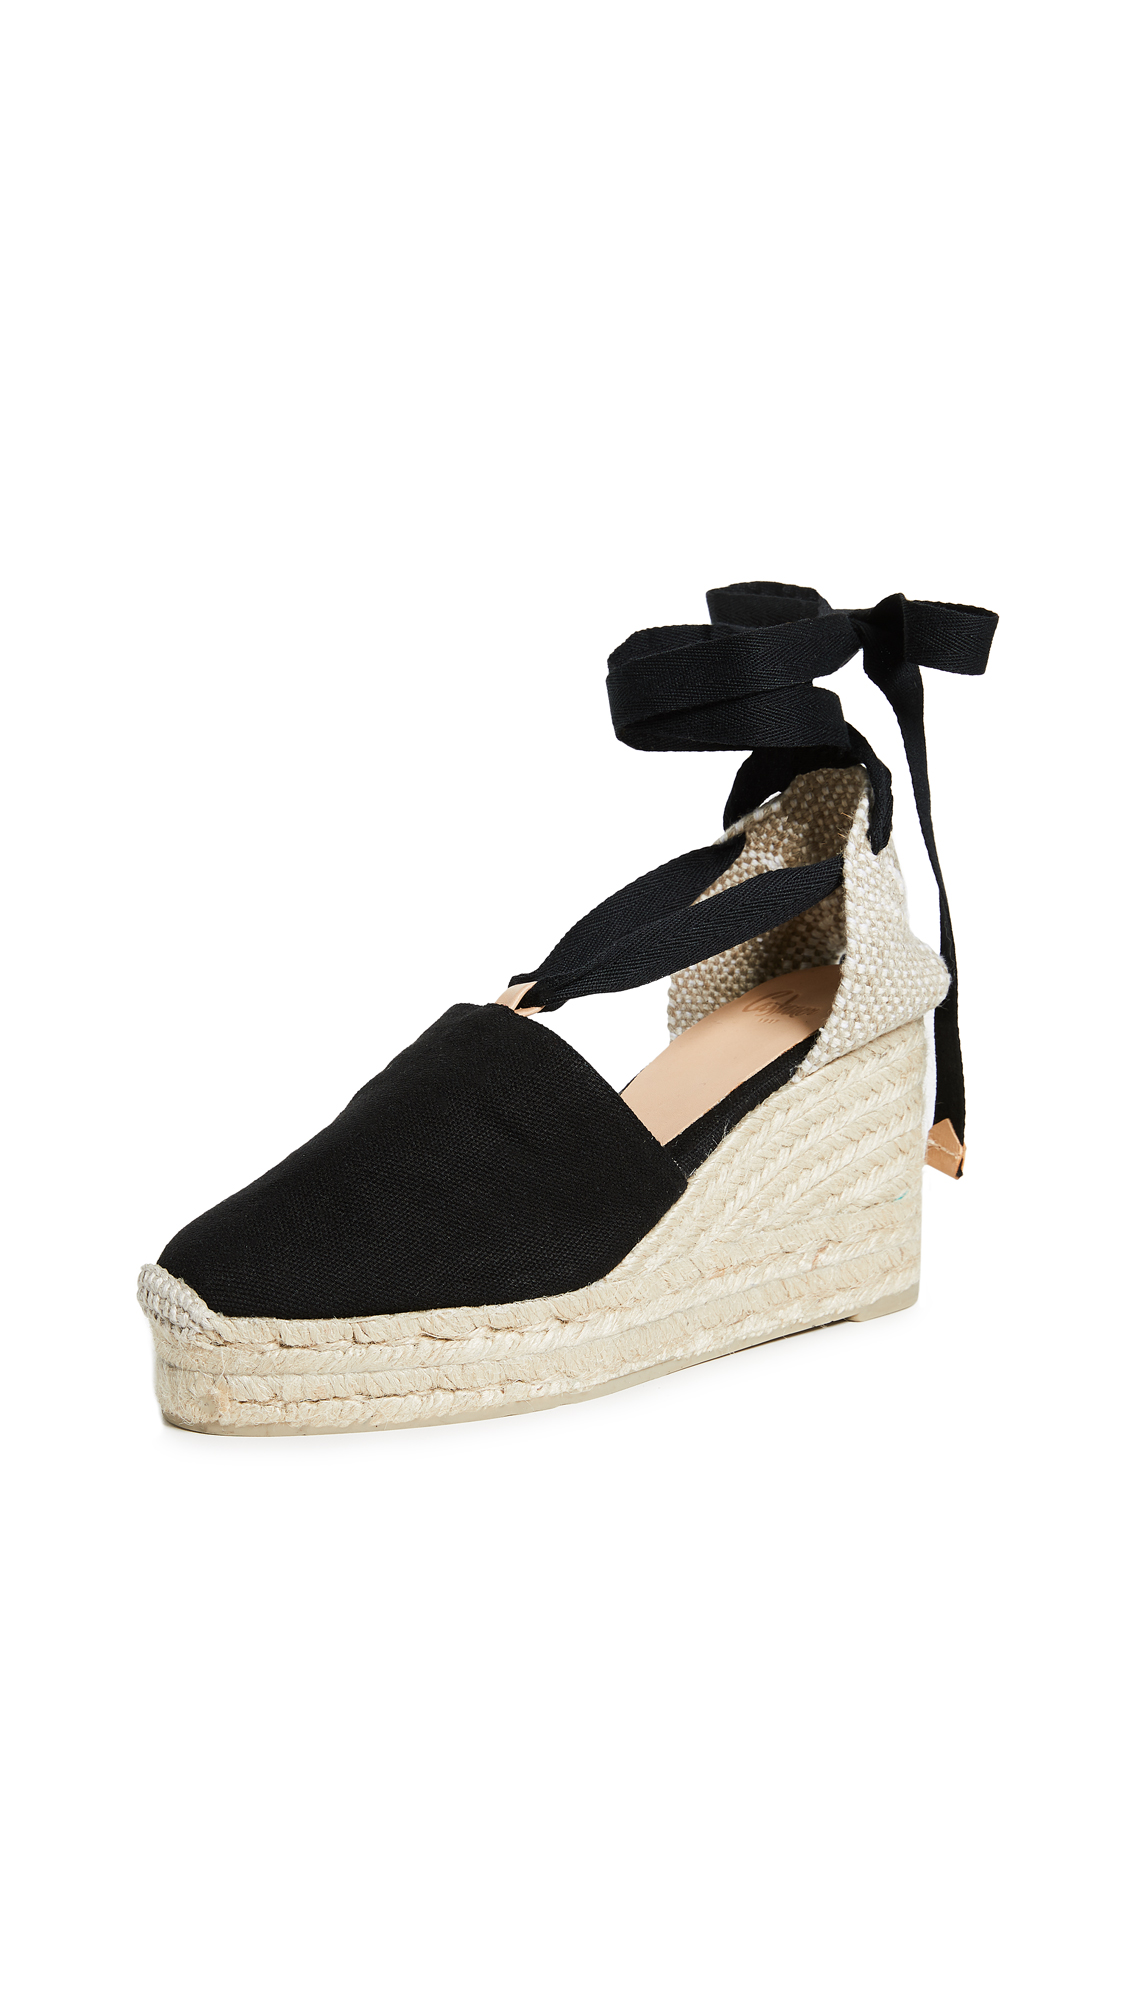 Castaner Campesina Wedges - Black